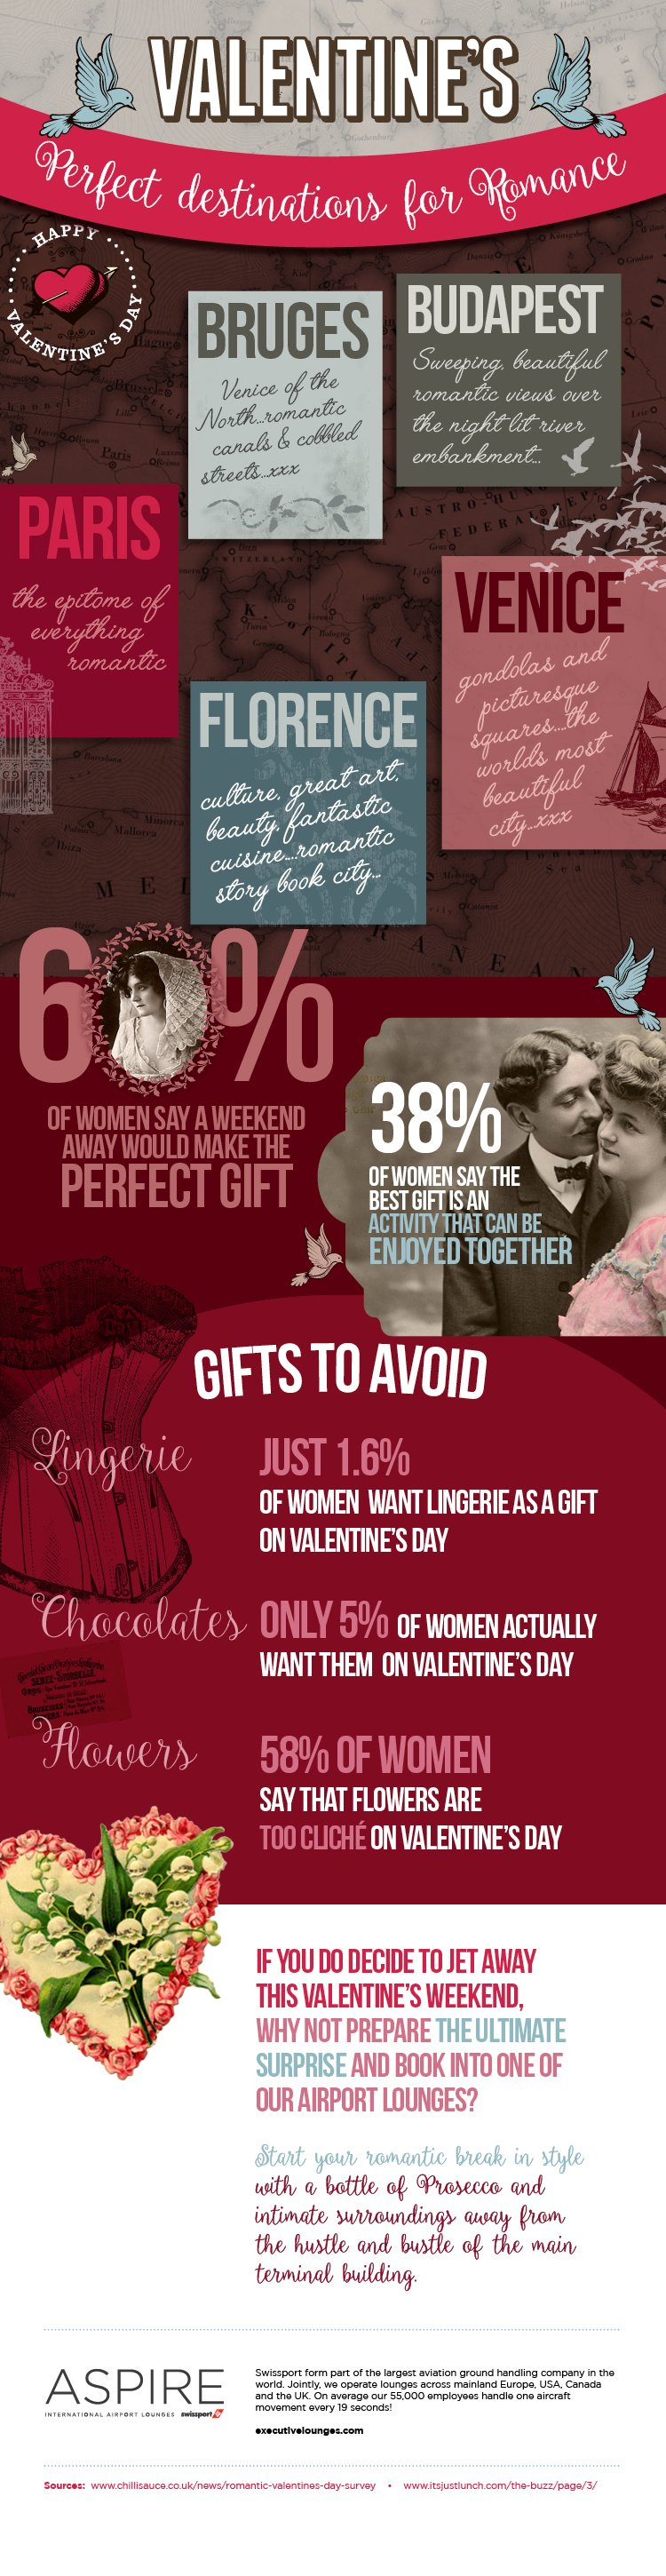 Valentines - Perfect Destinations for Romance Infographic